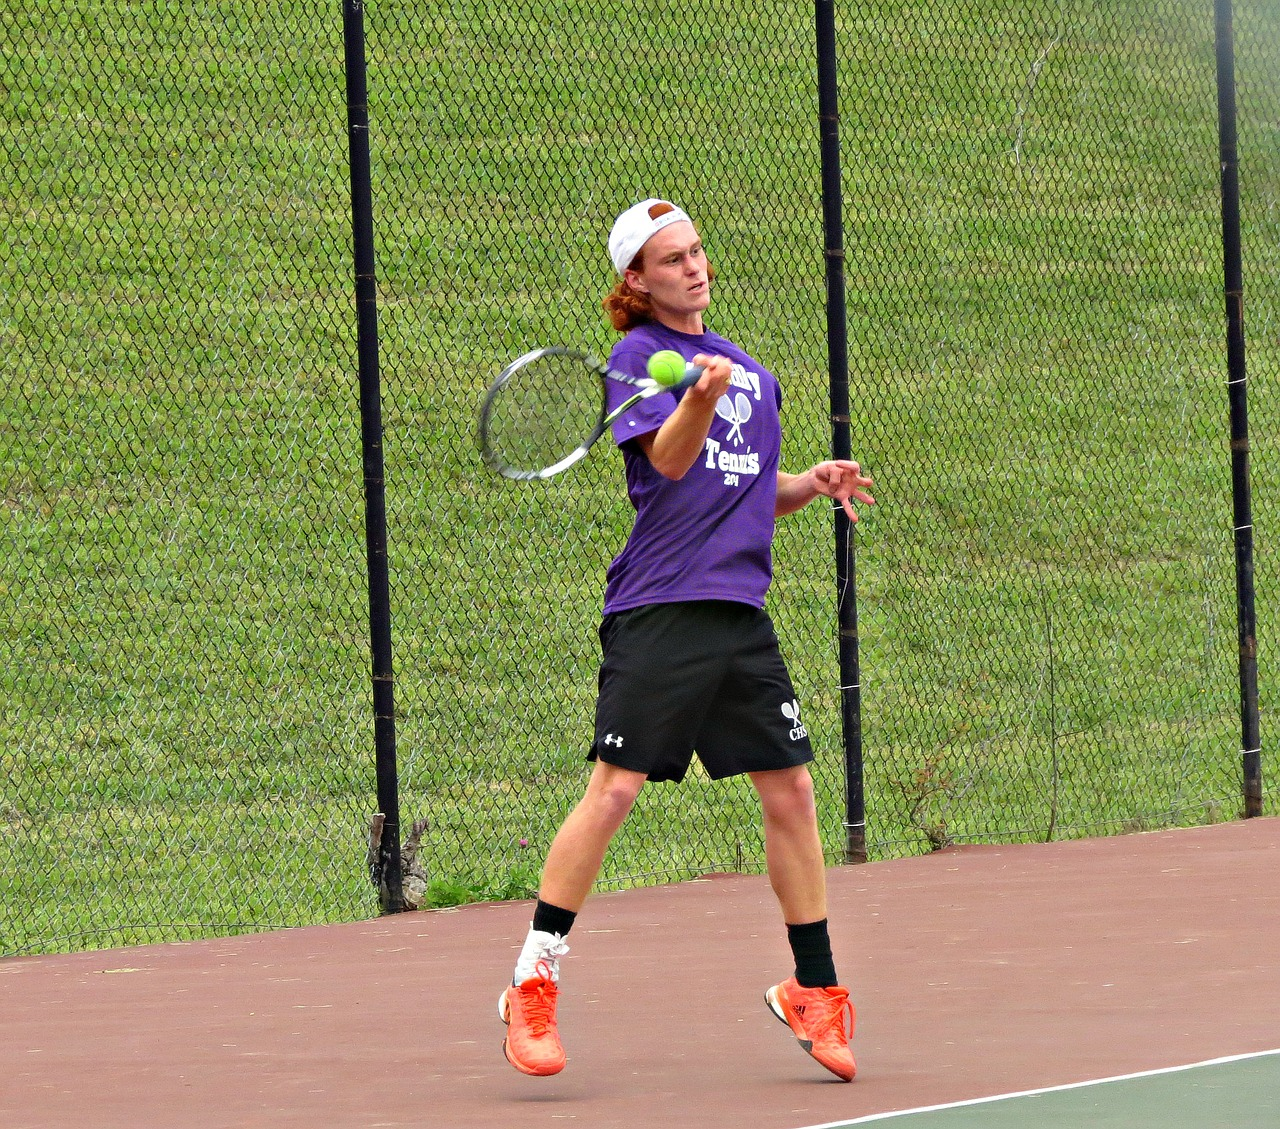 The Best Forehand Shots